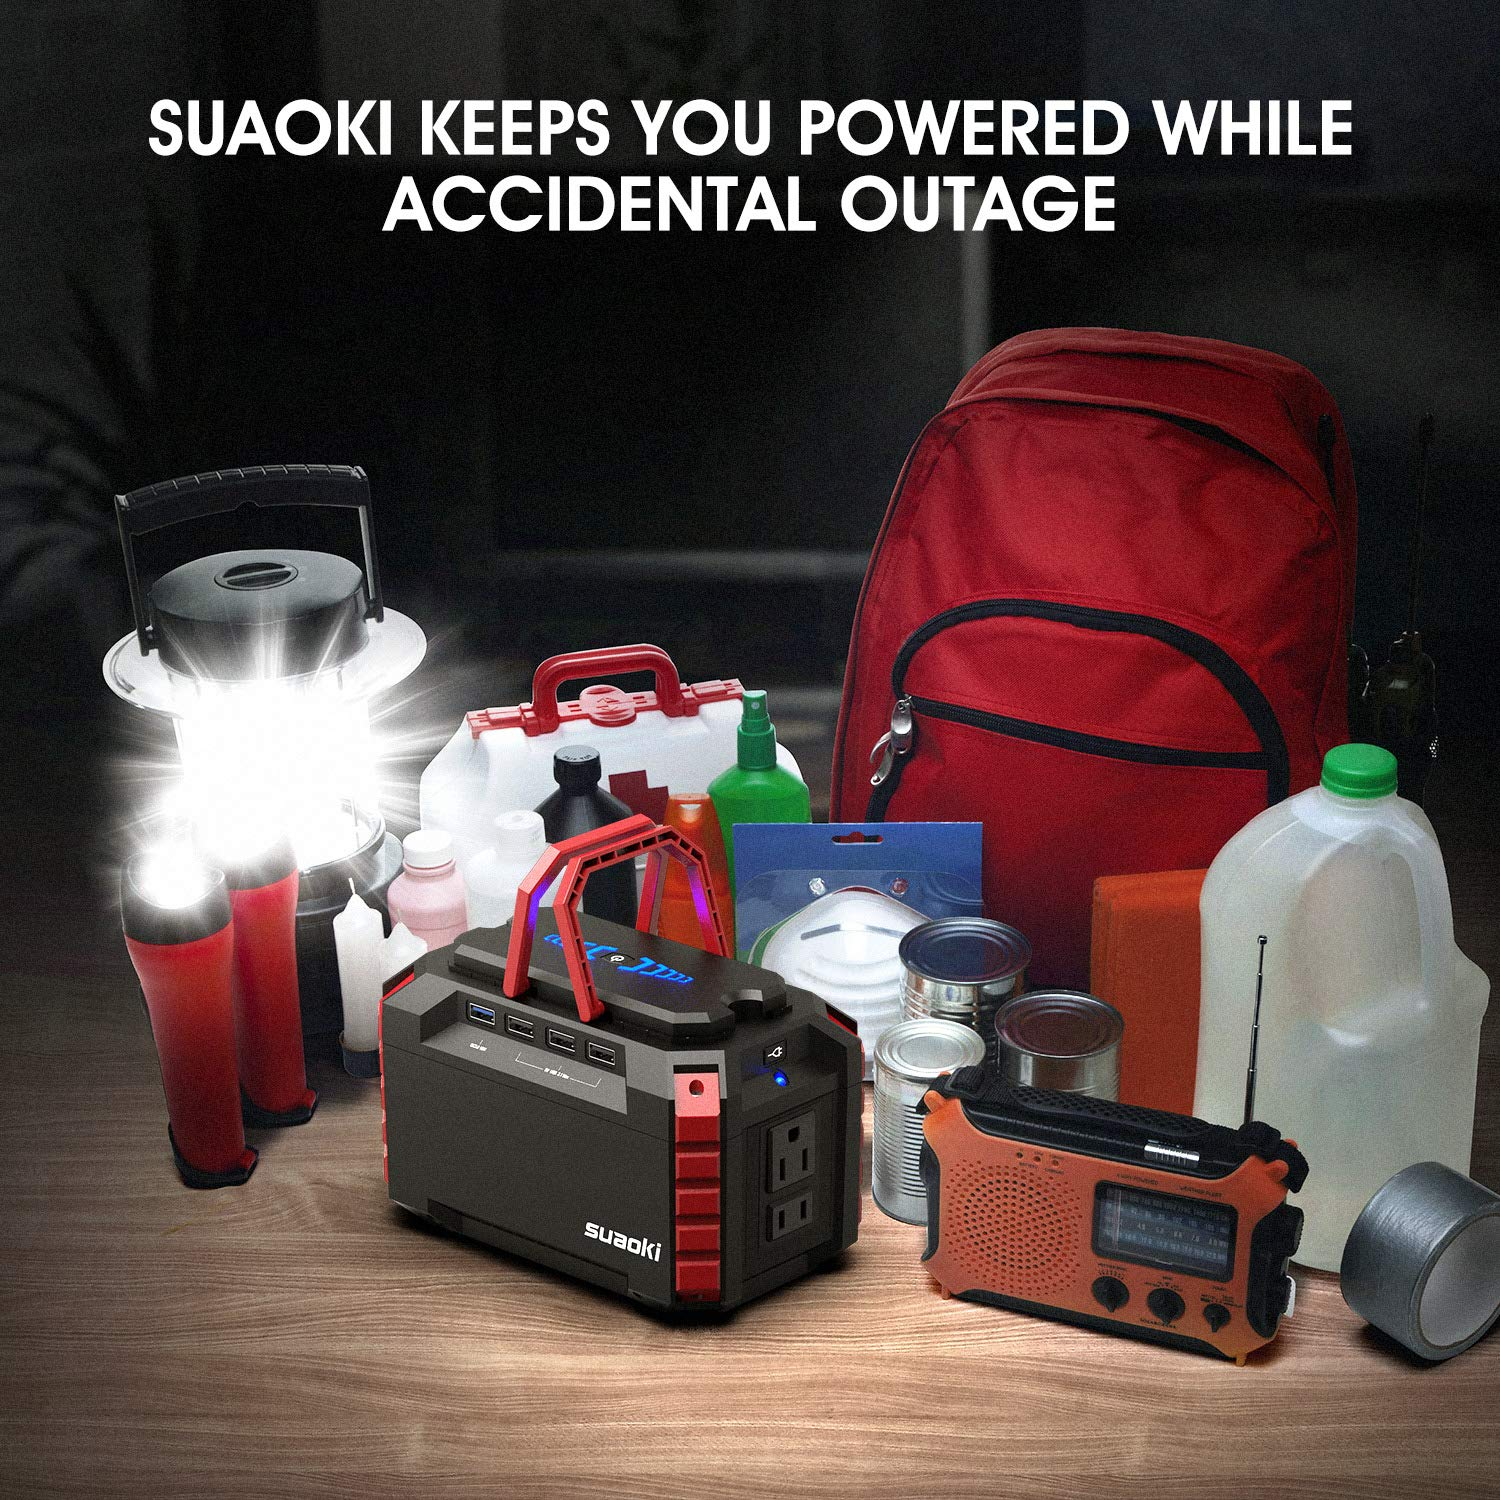 SUAOKI Portable Power Station, 150Wh 100W Camping Generator Lithium Power Supply UL Certified with Dual 110V AC Outlet, 4 DC Ports, 4 USB Ports, LED Flashlights for Camping Travel Emergency Backup